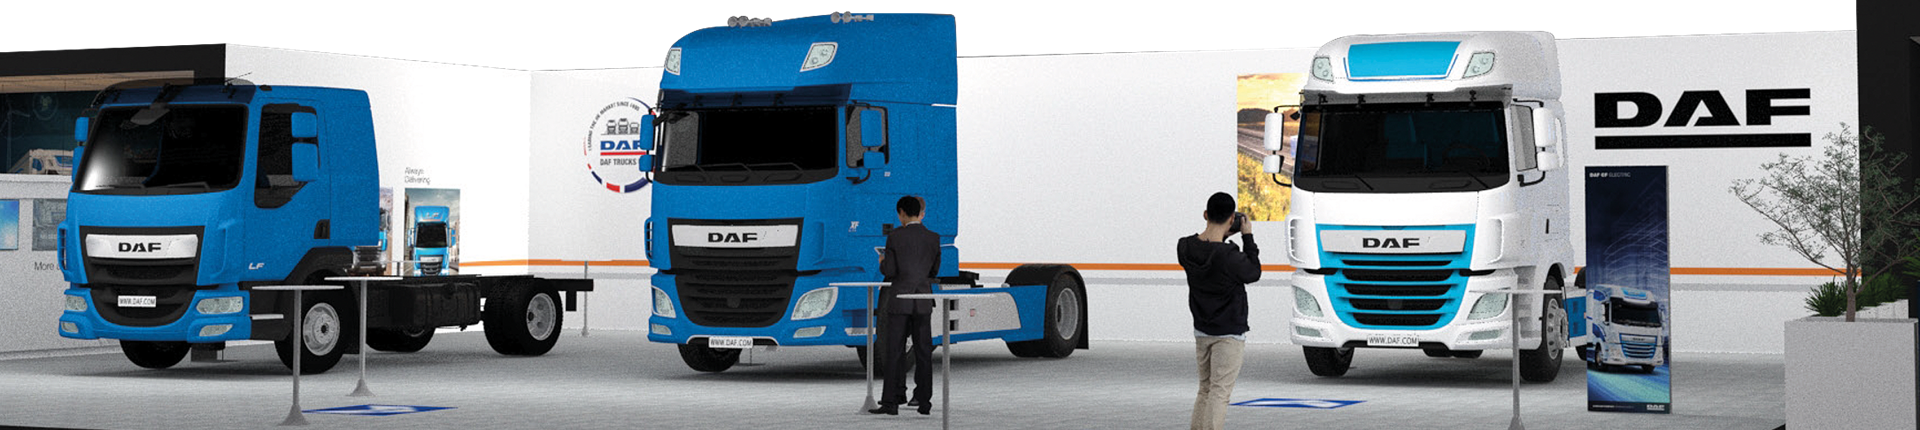 DAF_three-trucks-elevation-with-electric